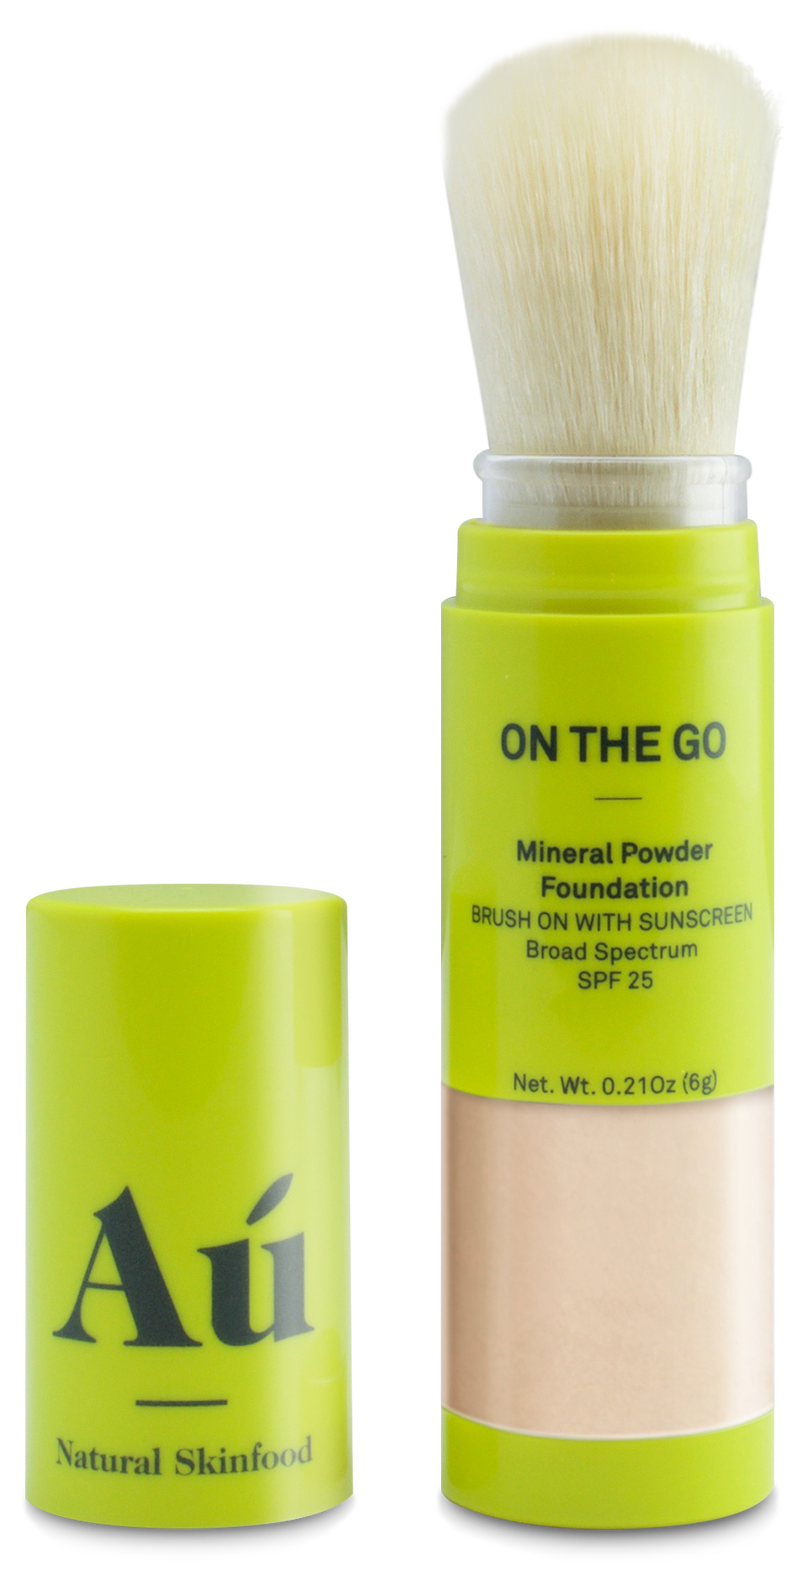 Au On The Go Mineral Powder Medium